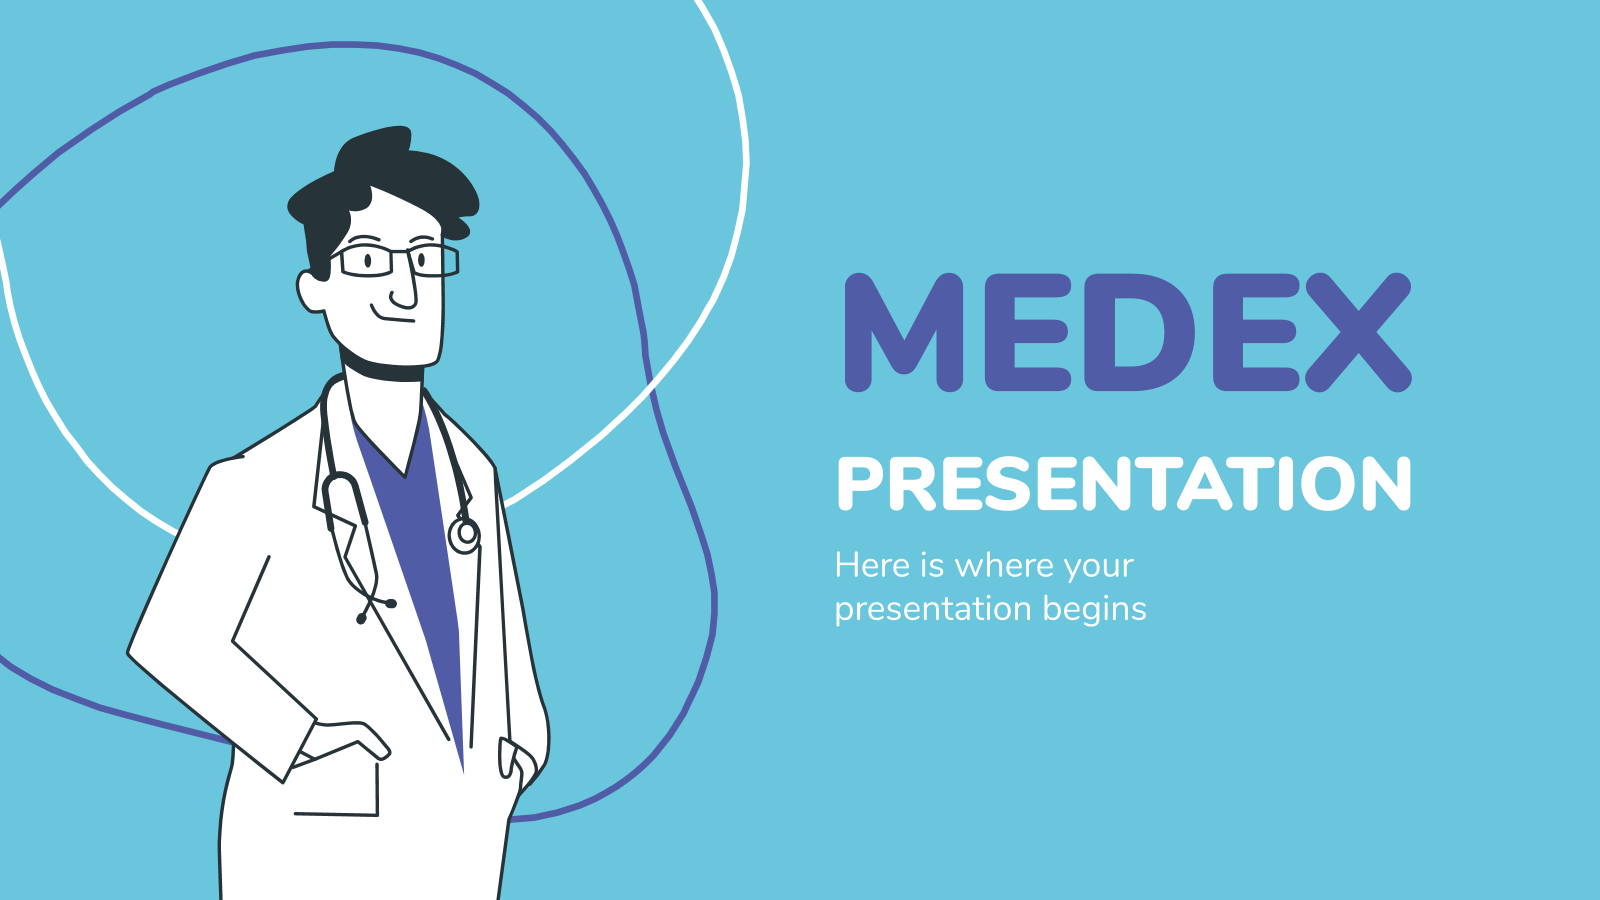 Medex presentation presentation template